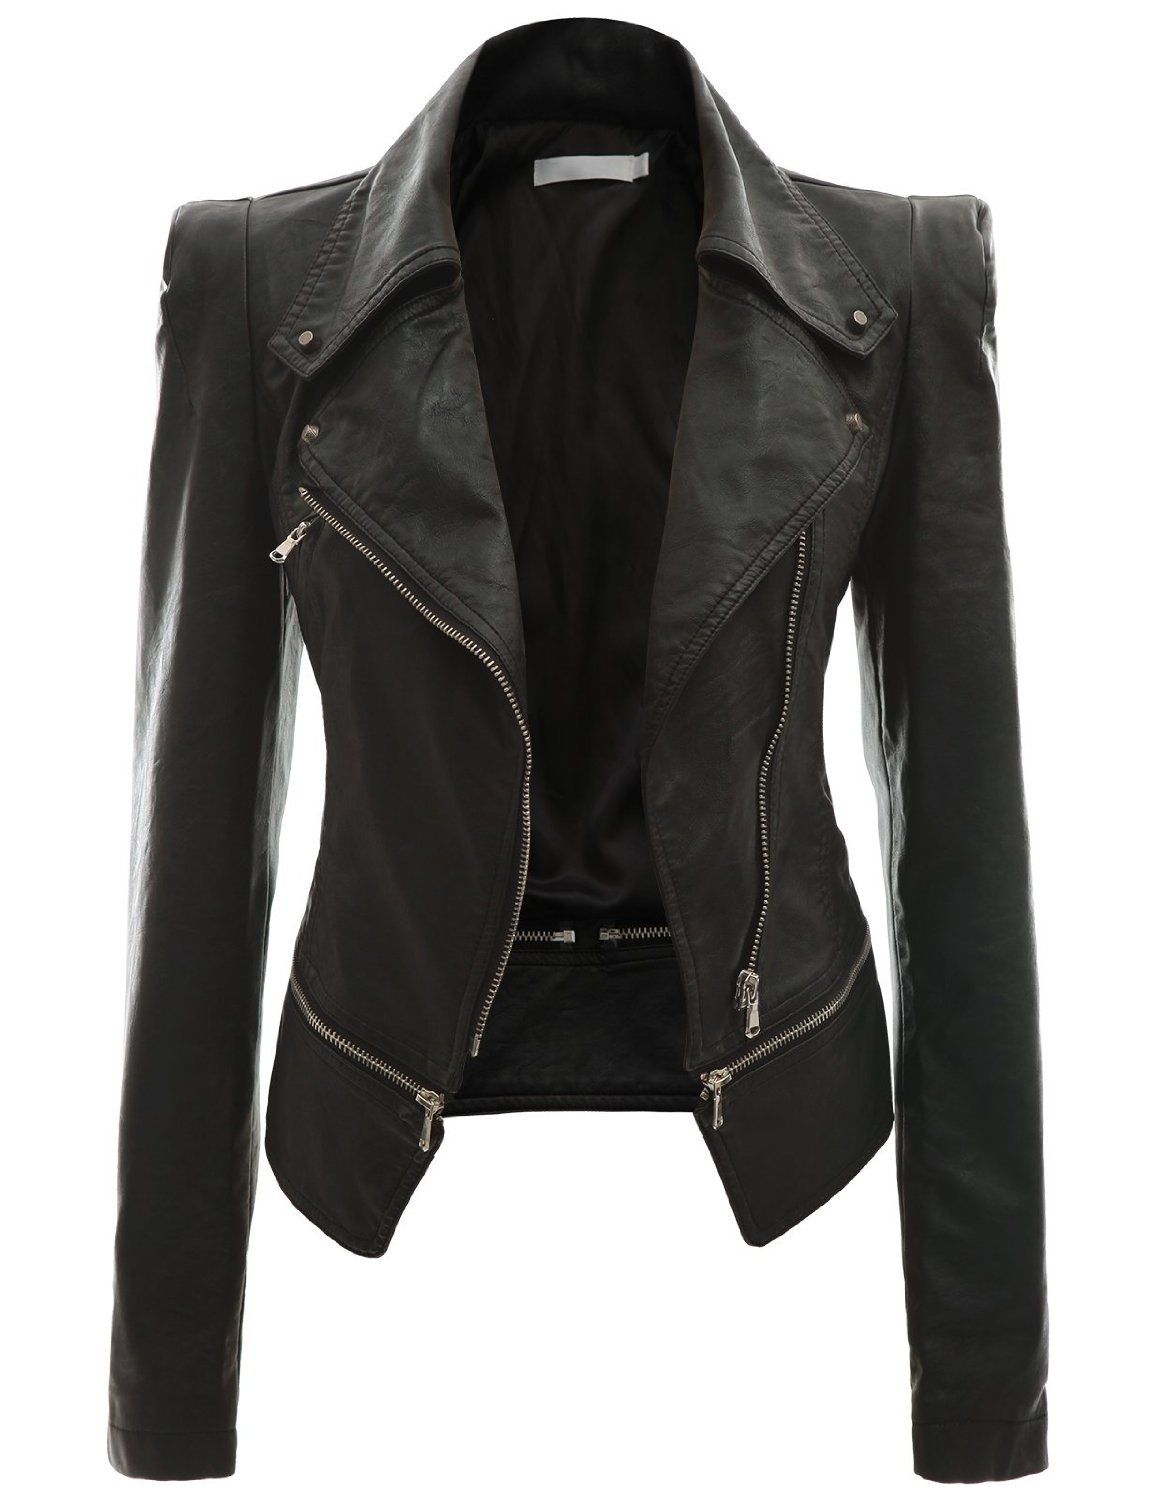 black jackets for women fashionable leather jackets for women | new daily fashion MRWWONO